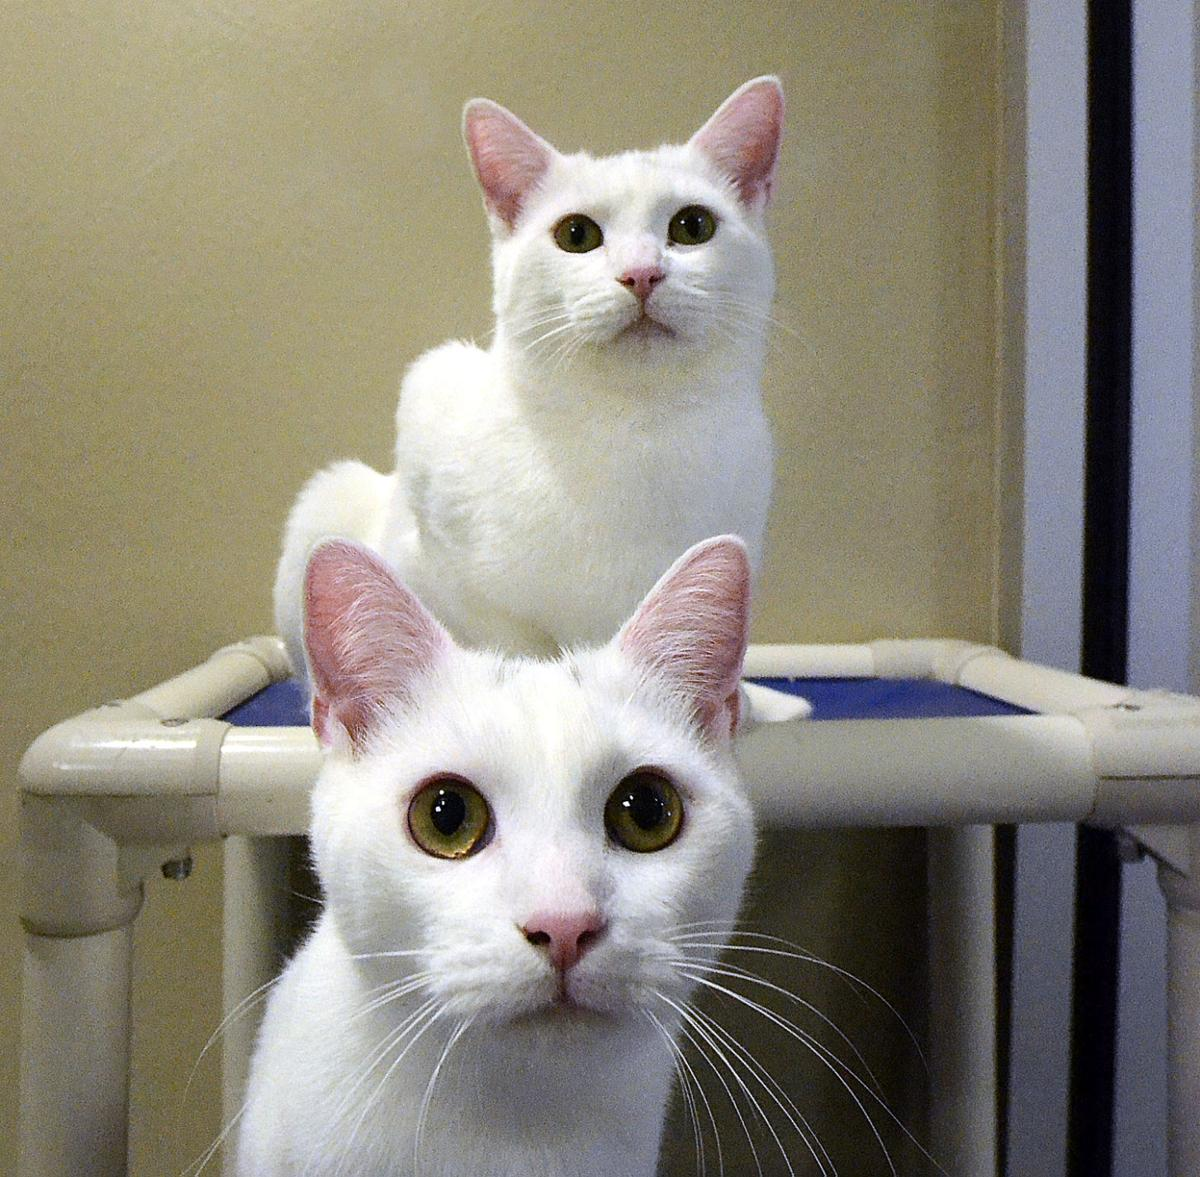 Shelter Kills 87 Cats: Fears Of Highly Contagious Disease